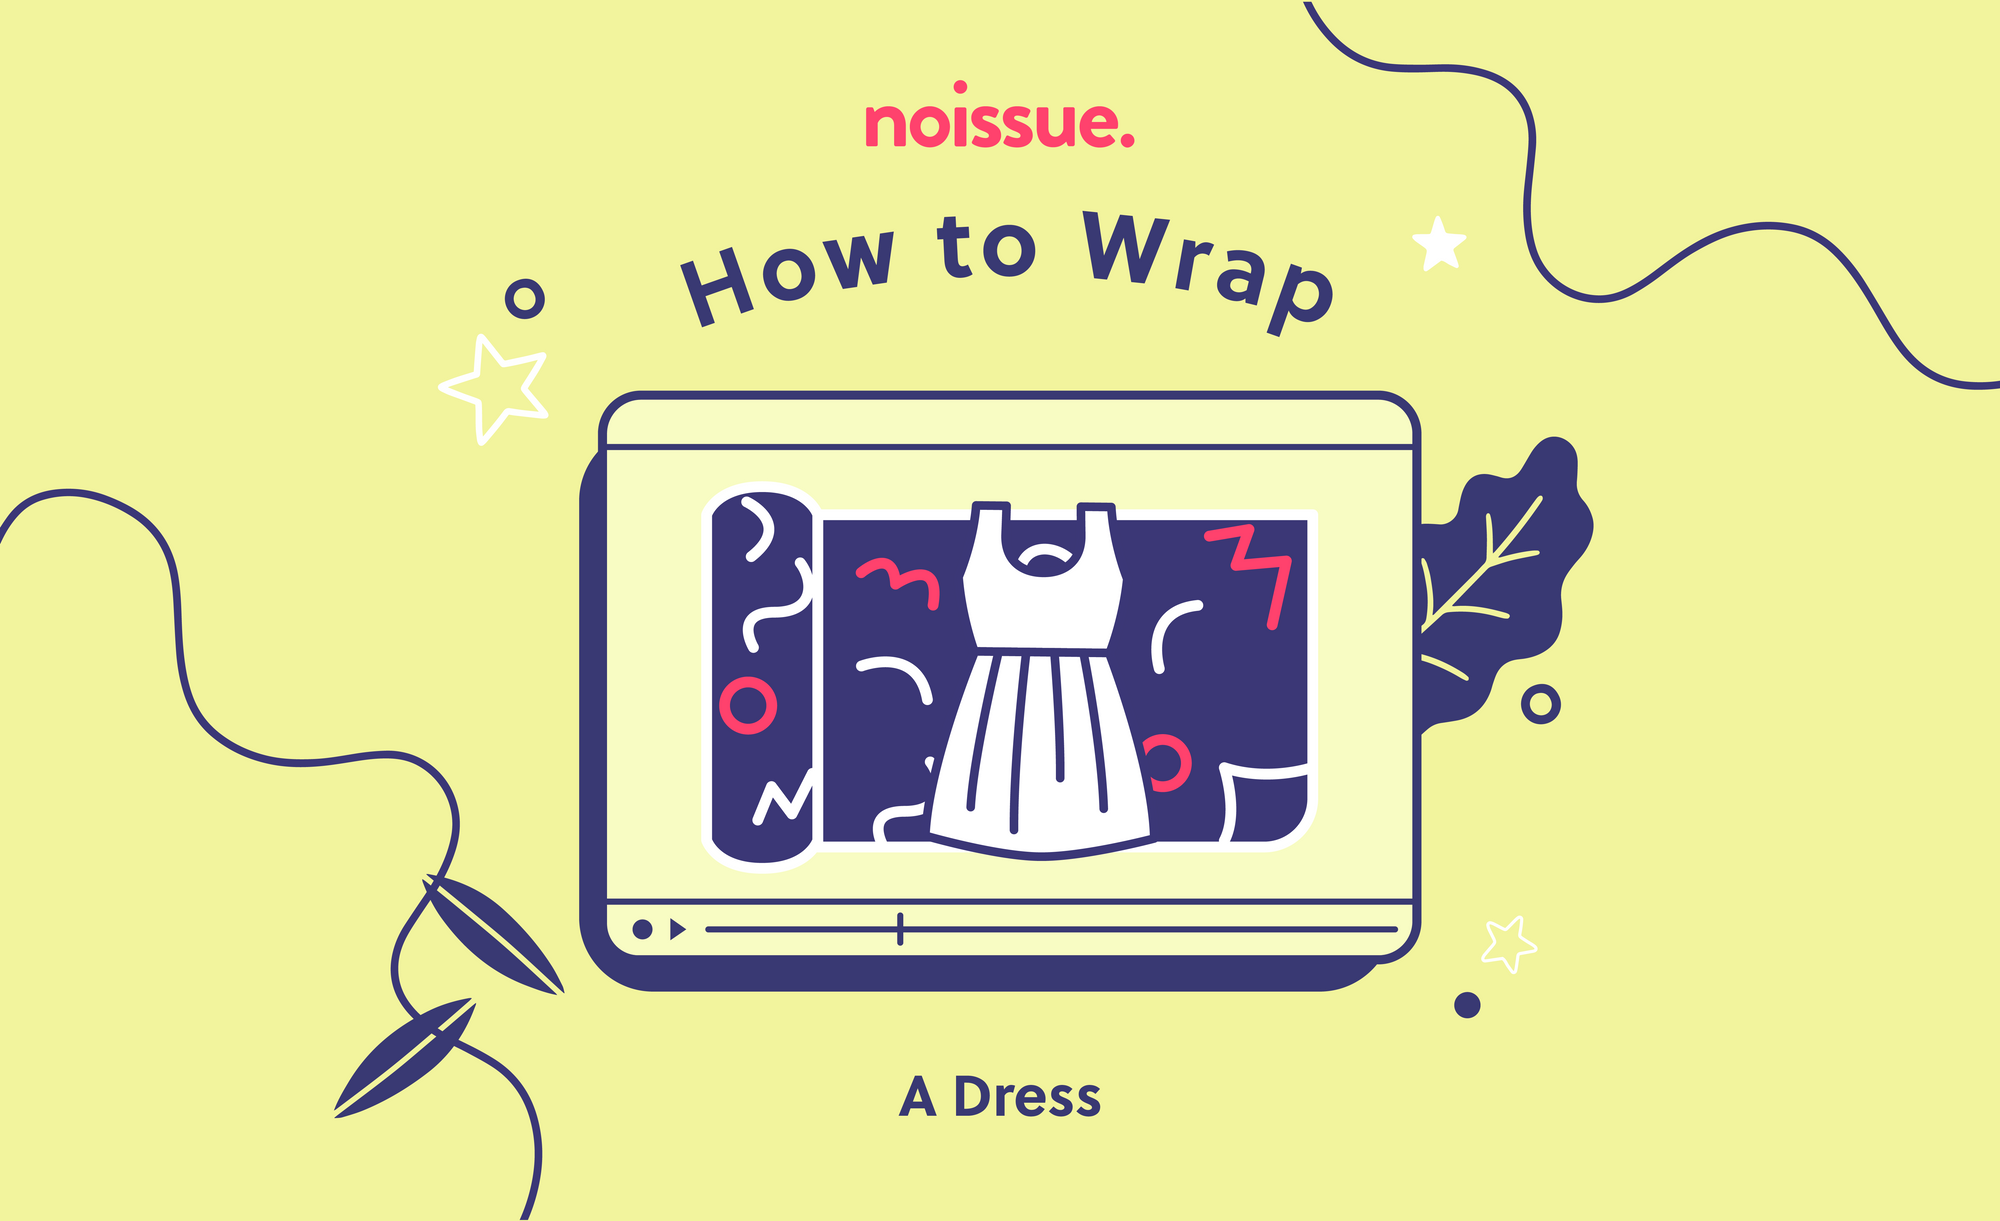 How to Wrap: A Dress